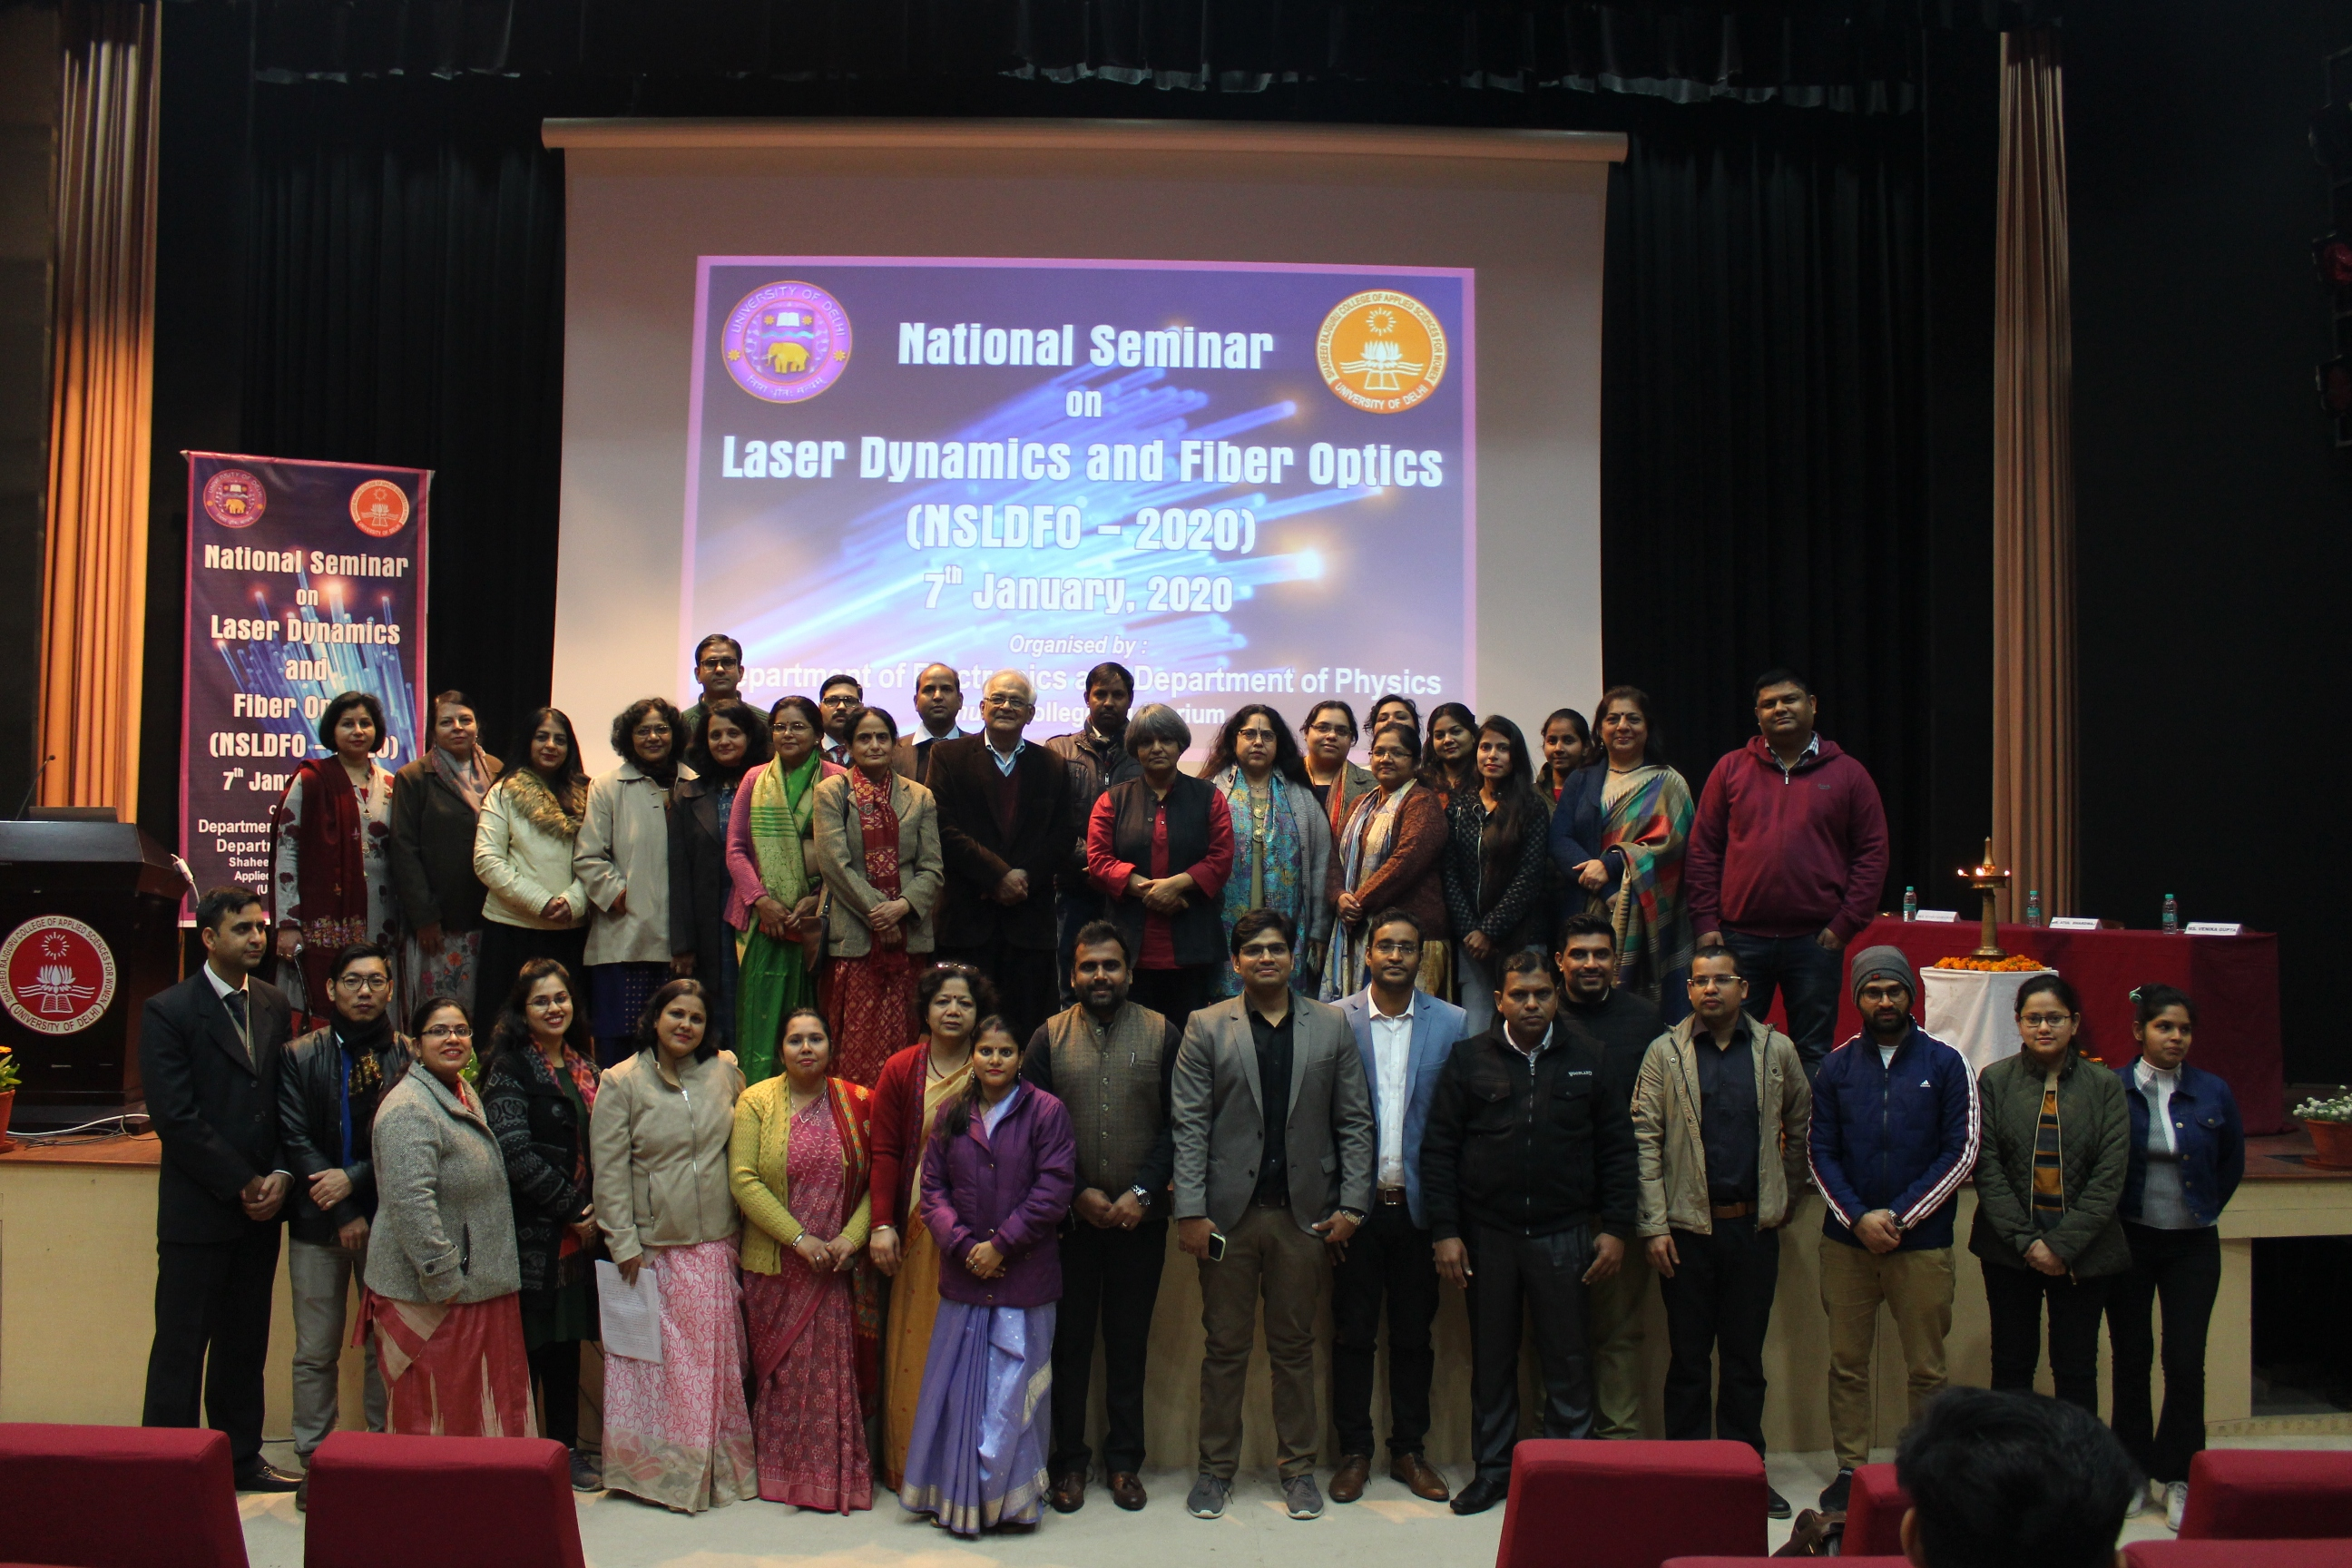 National Seminar on Laser Dynamics and  Fiber optics